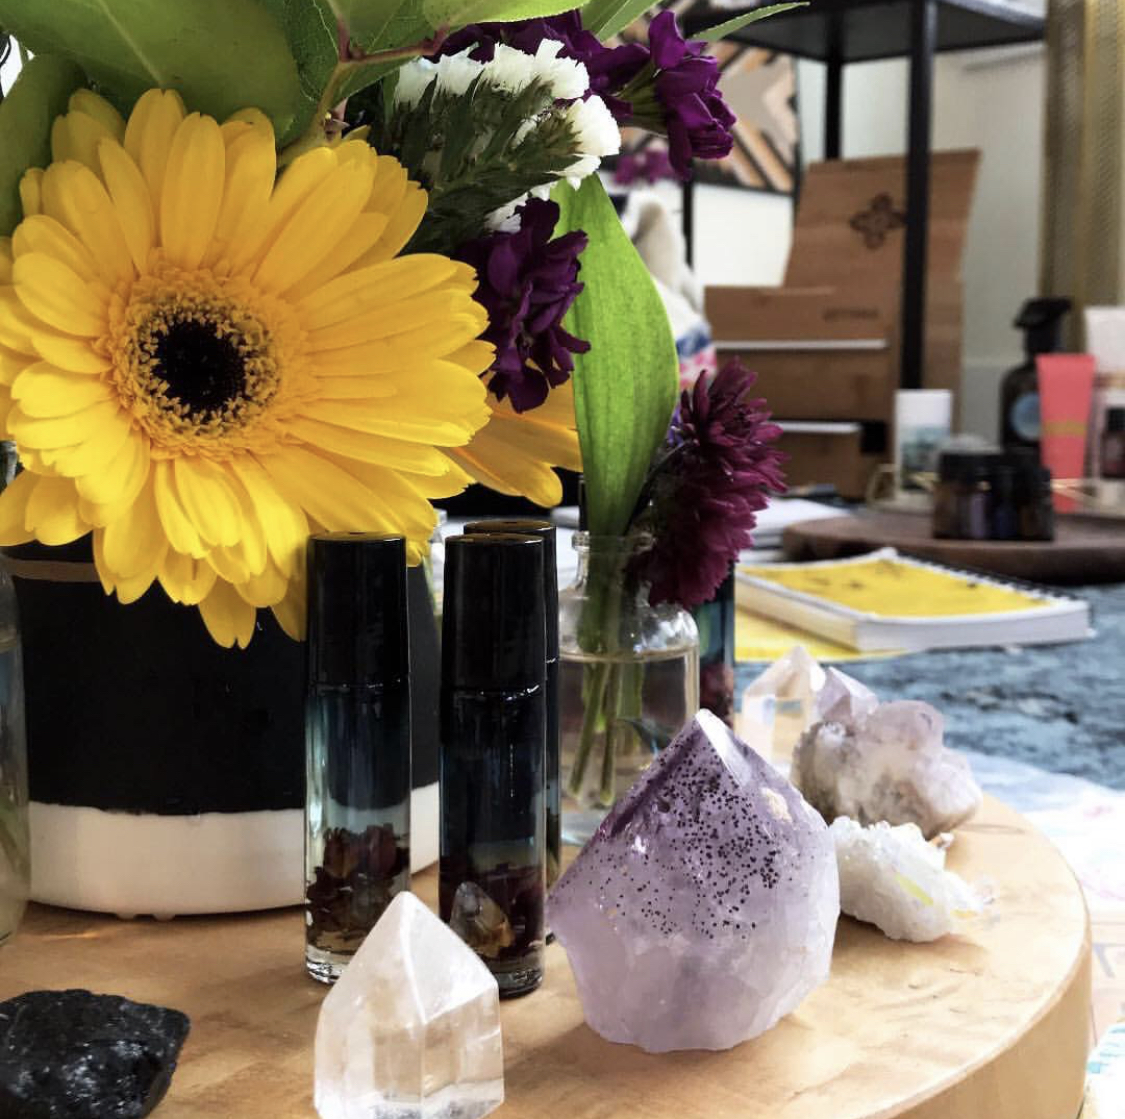 Oils + Oil Blends - Crafted with intention by April to uplift, defend, open, heal and expand.